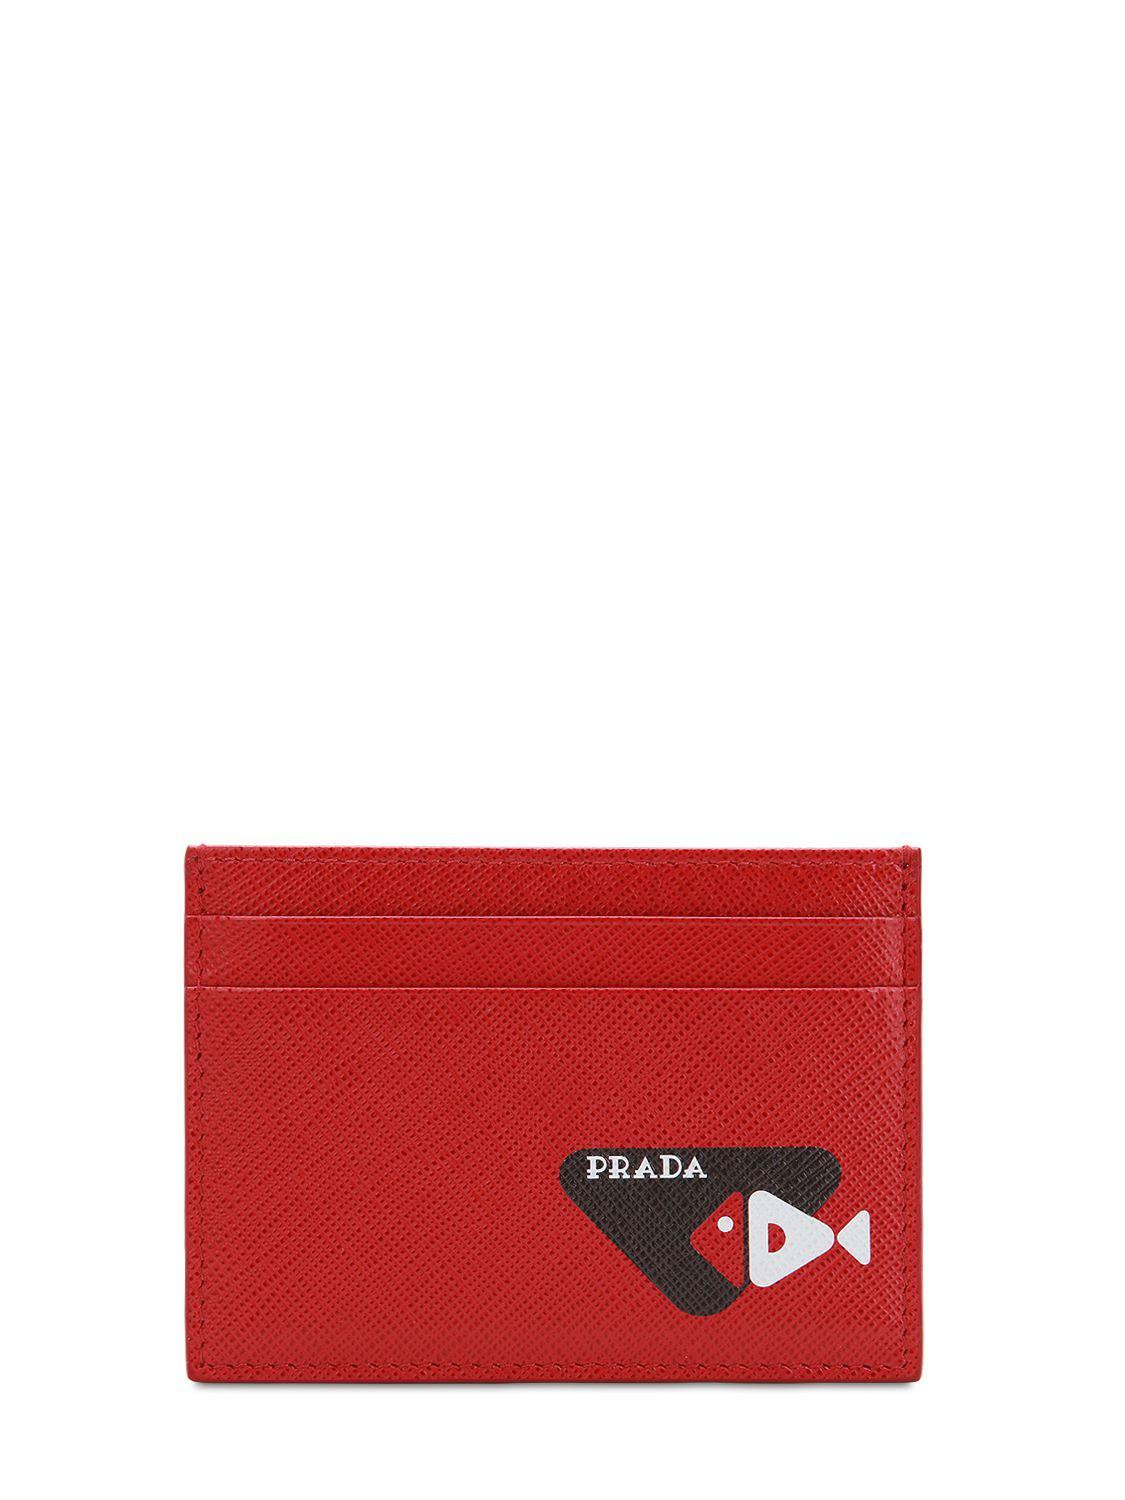 4313801a8d9f Prada - Red Printed Saffiano Leather Card Holder for Men - Lyst. View  fullscreen